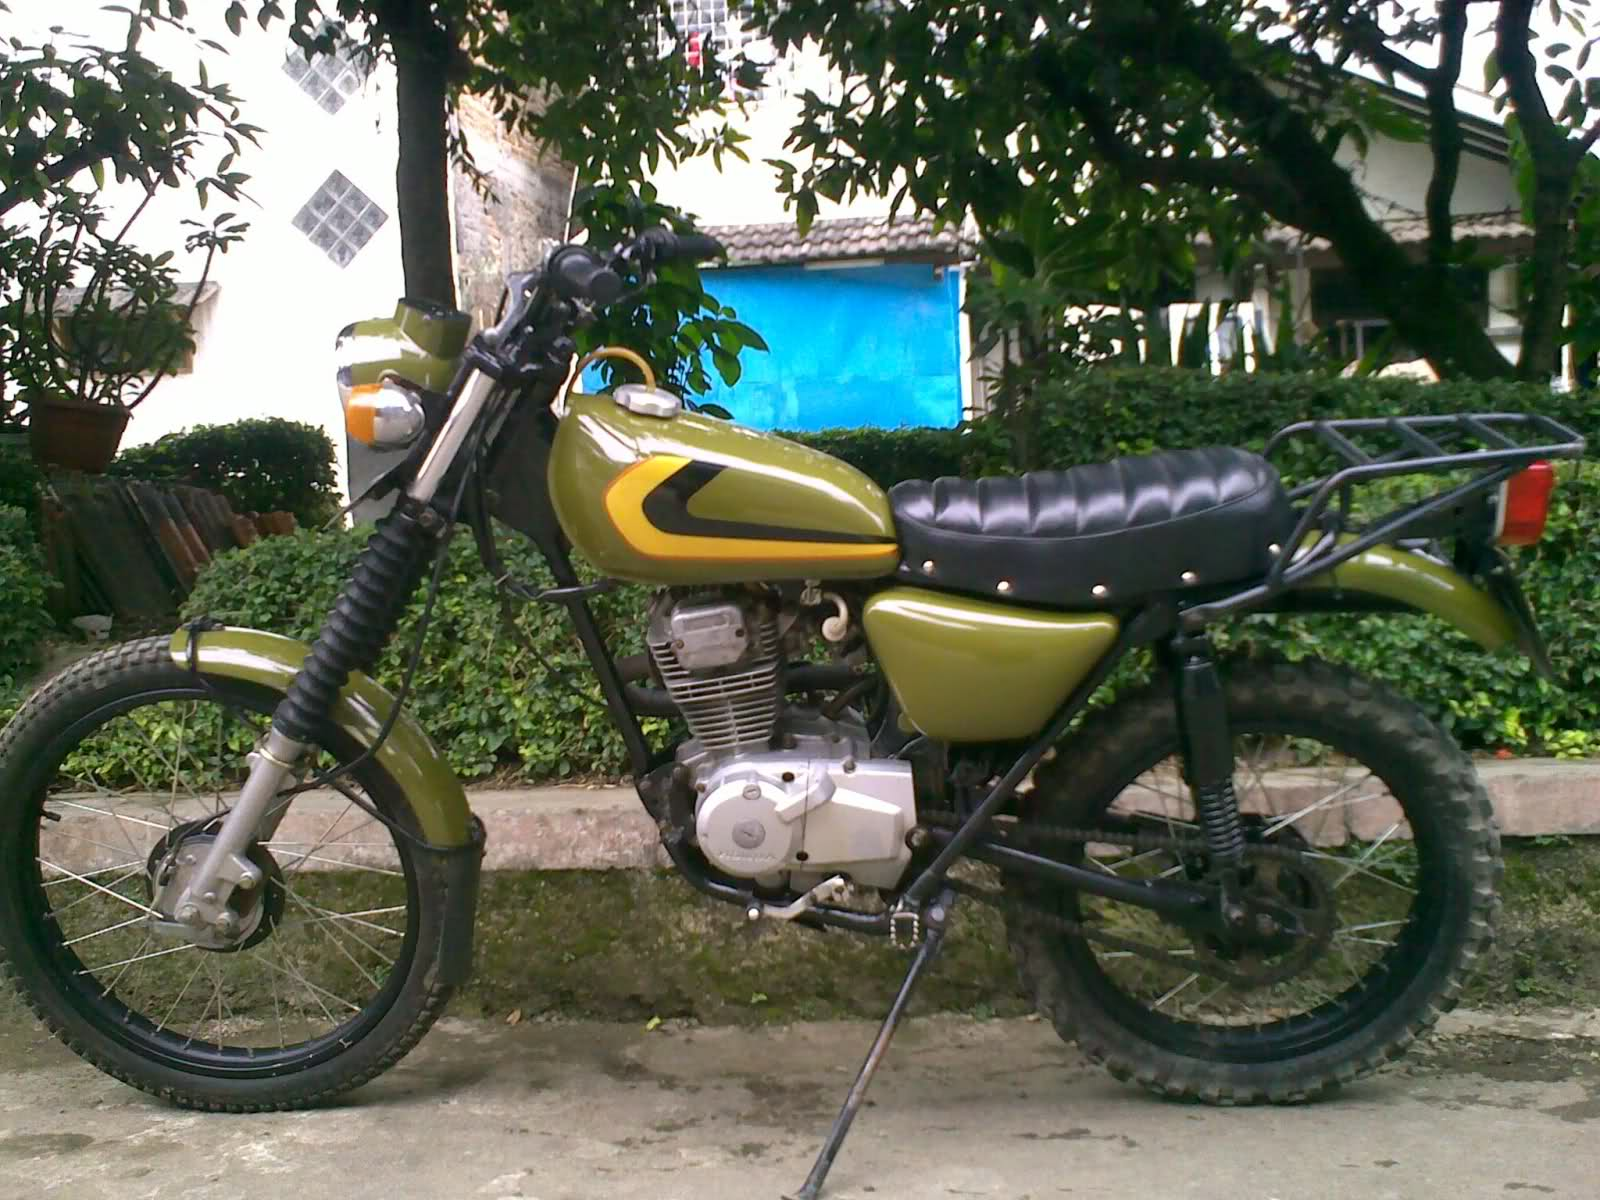 1983 Honda GL Max Modif Honda XL Trail - For Sale